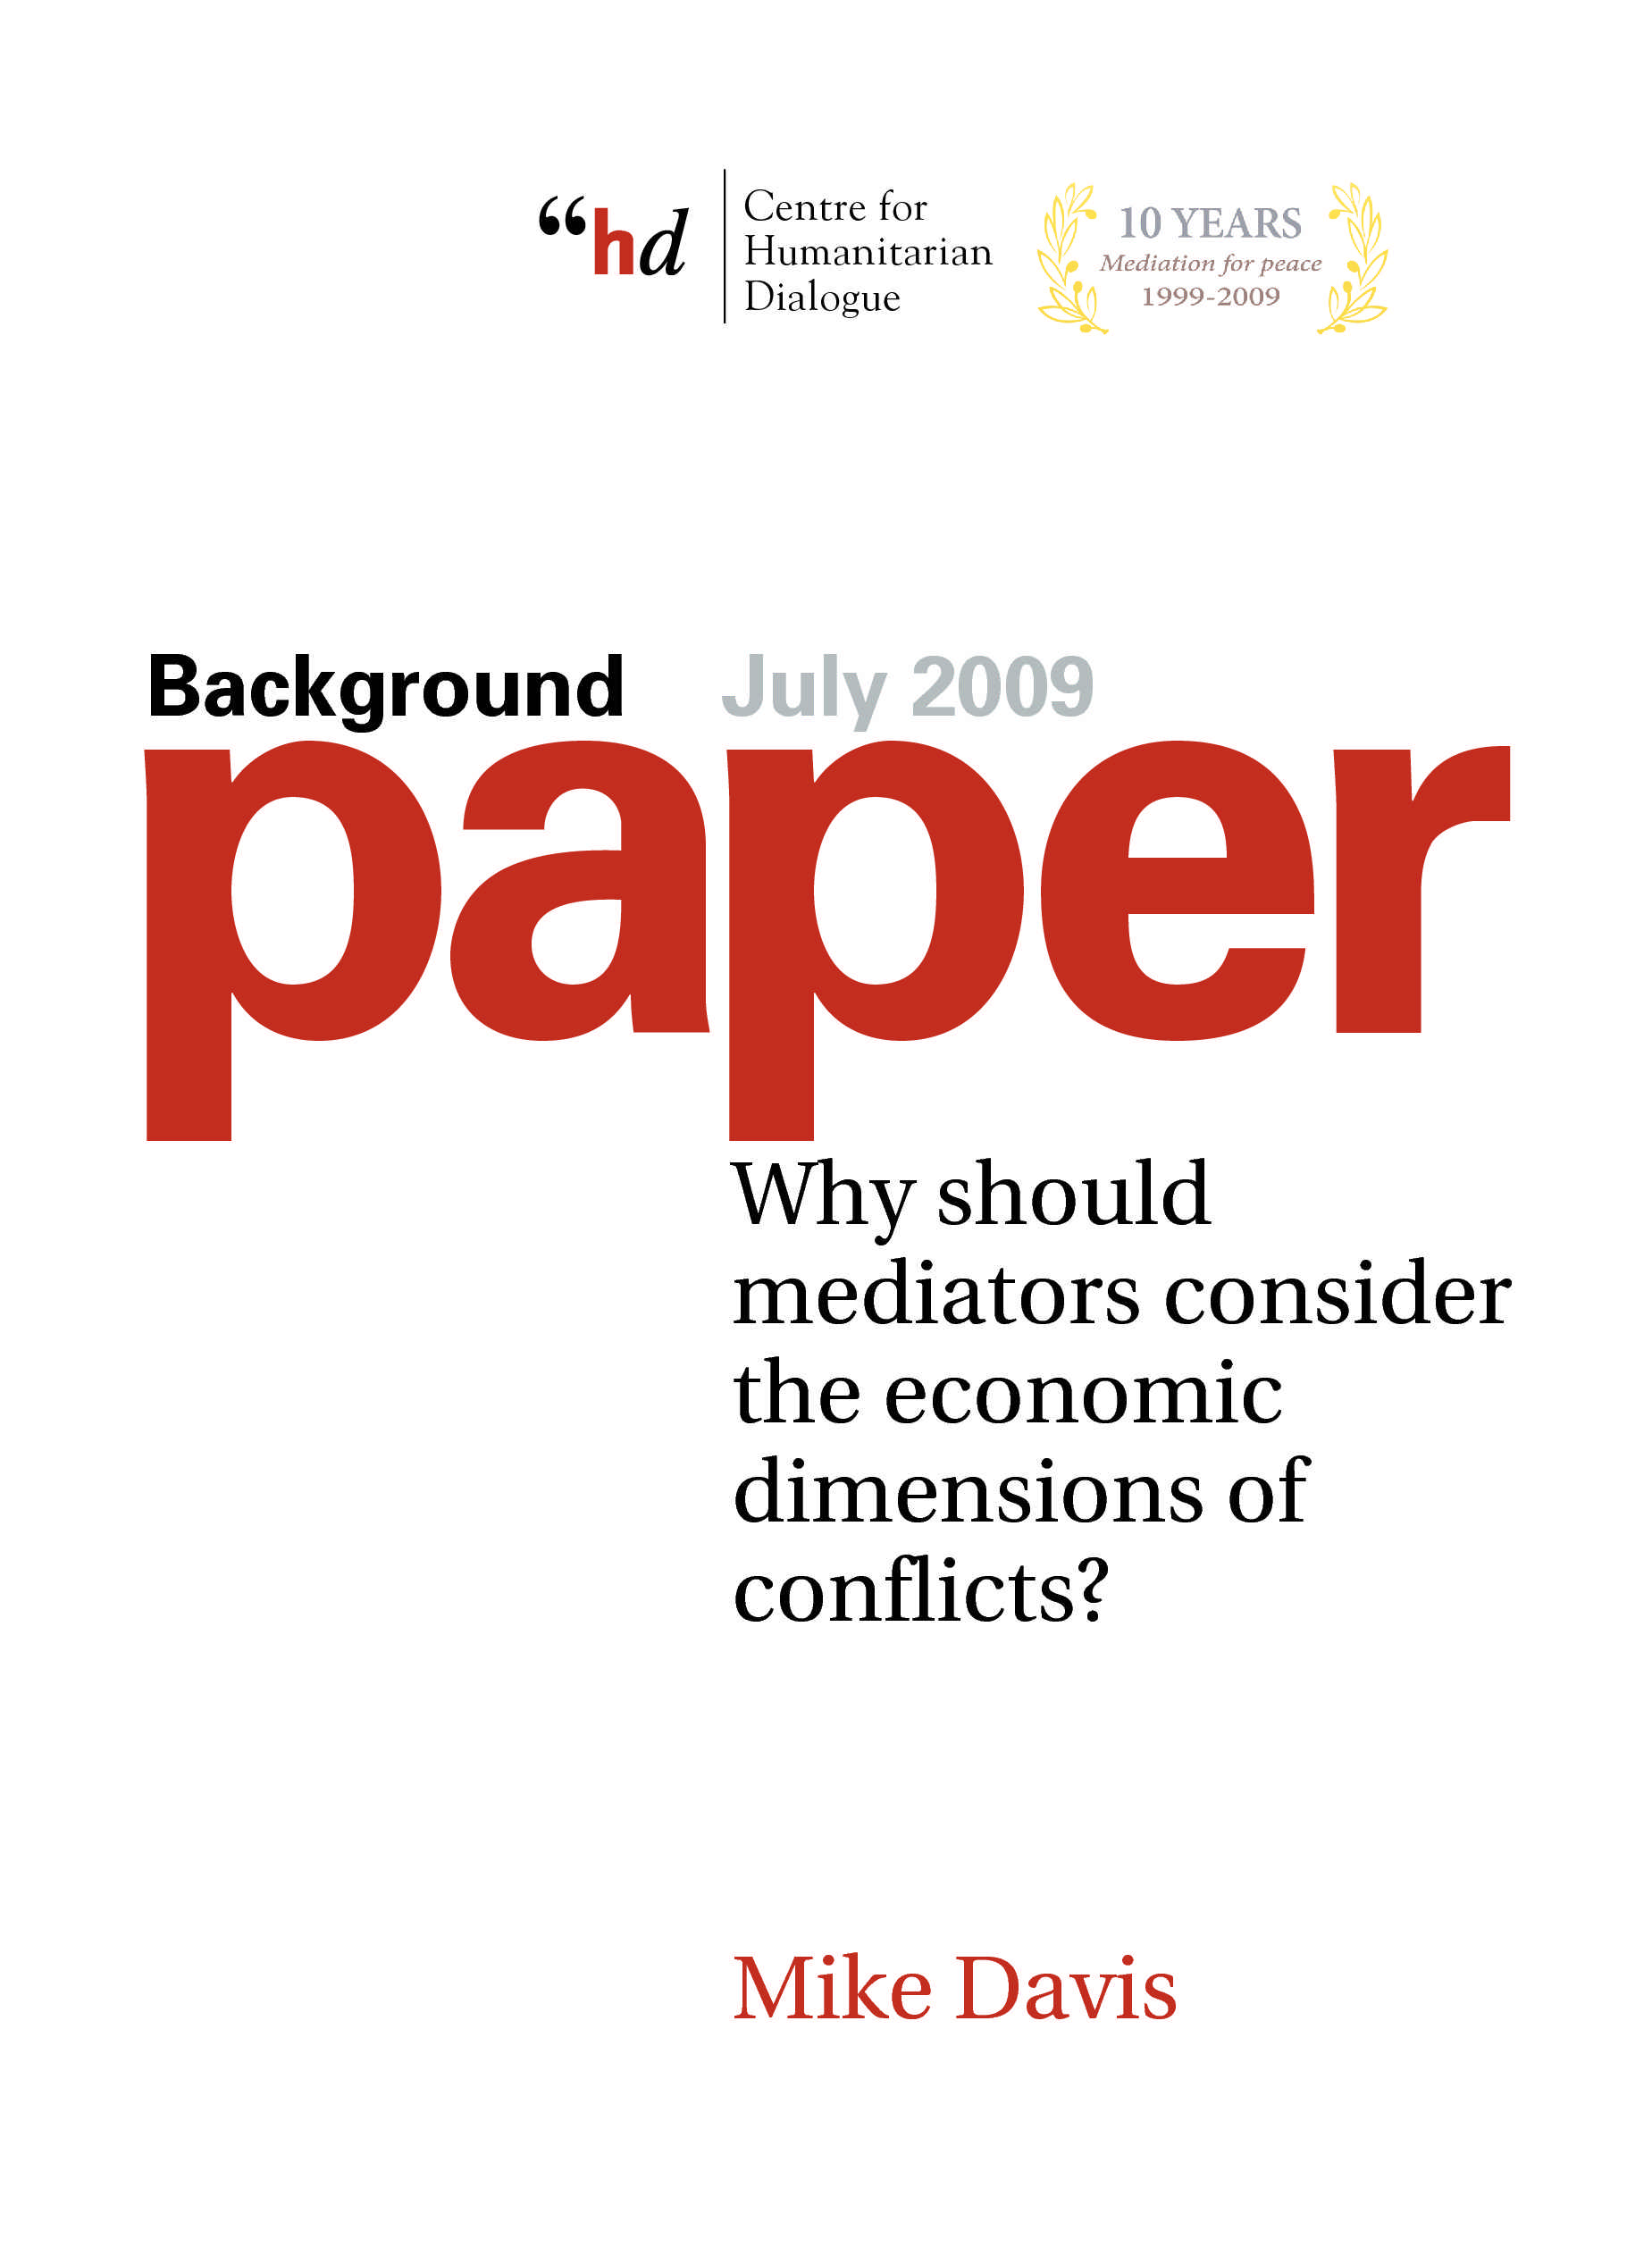 Why should mediators consider the economic dimensions of conflicts?